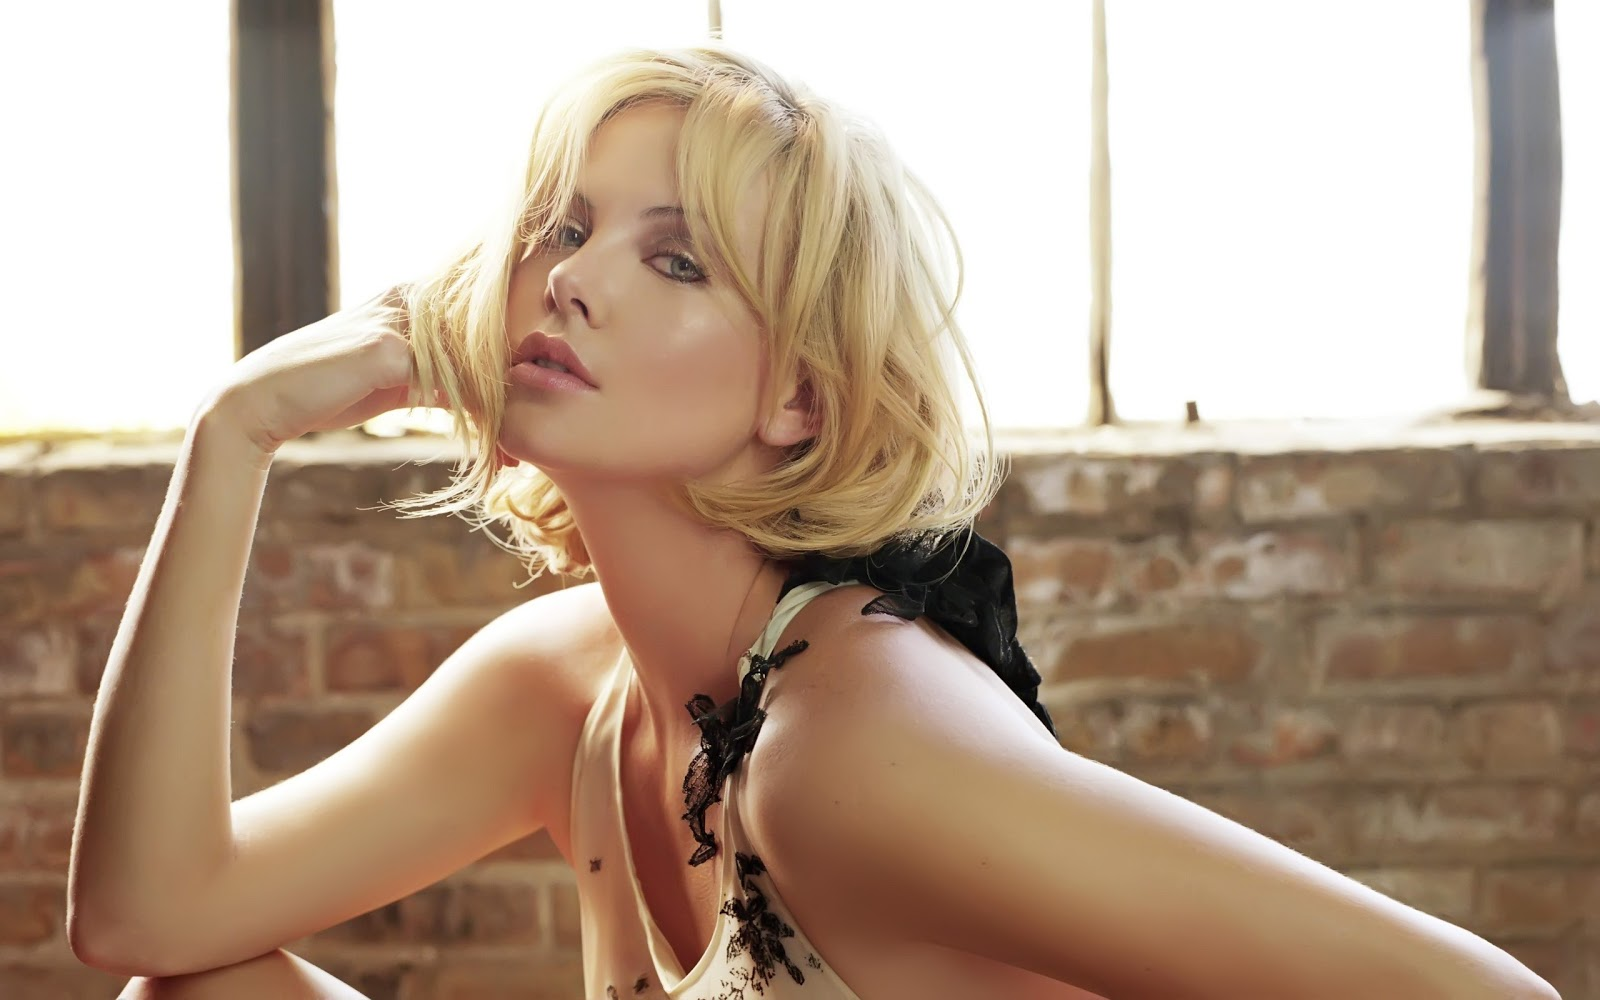 hd awesome charlize therons wallpaper